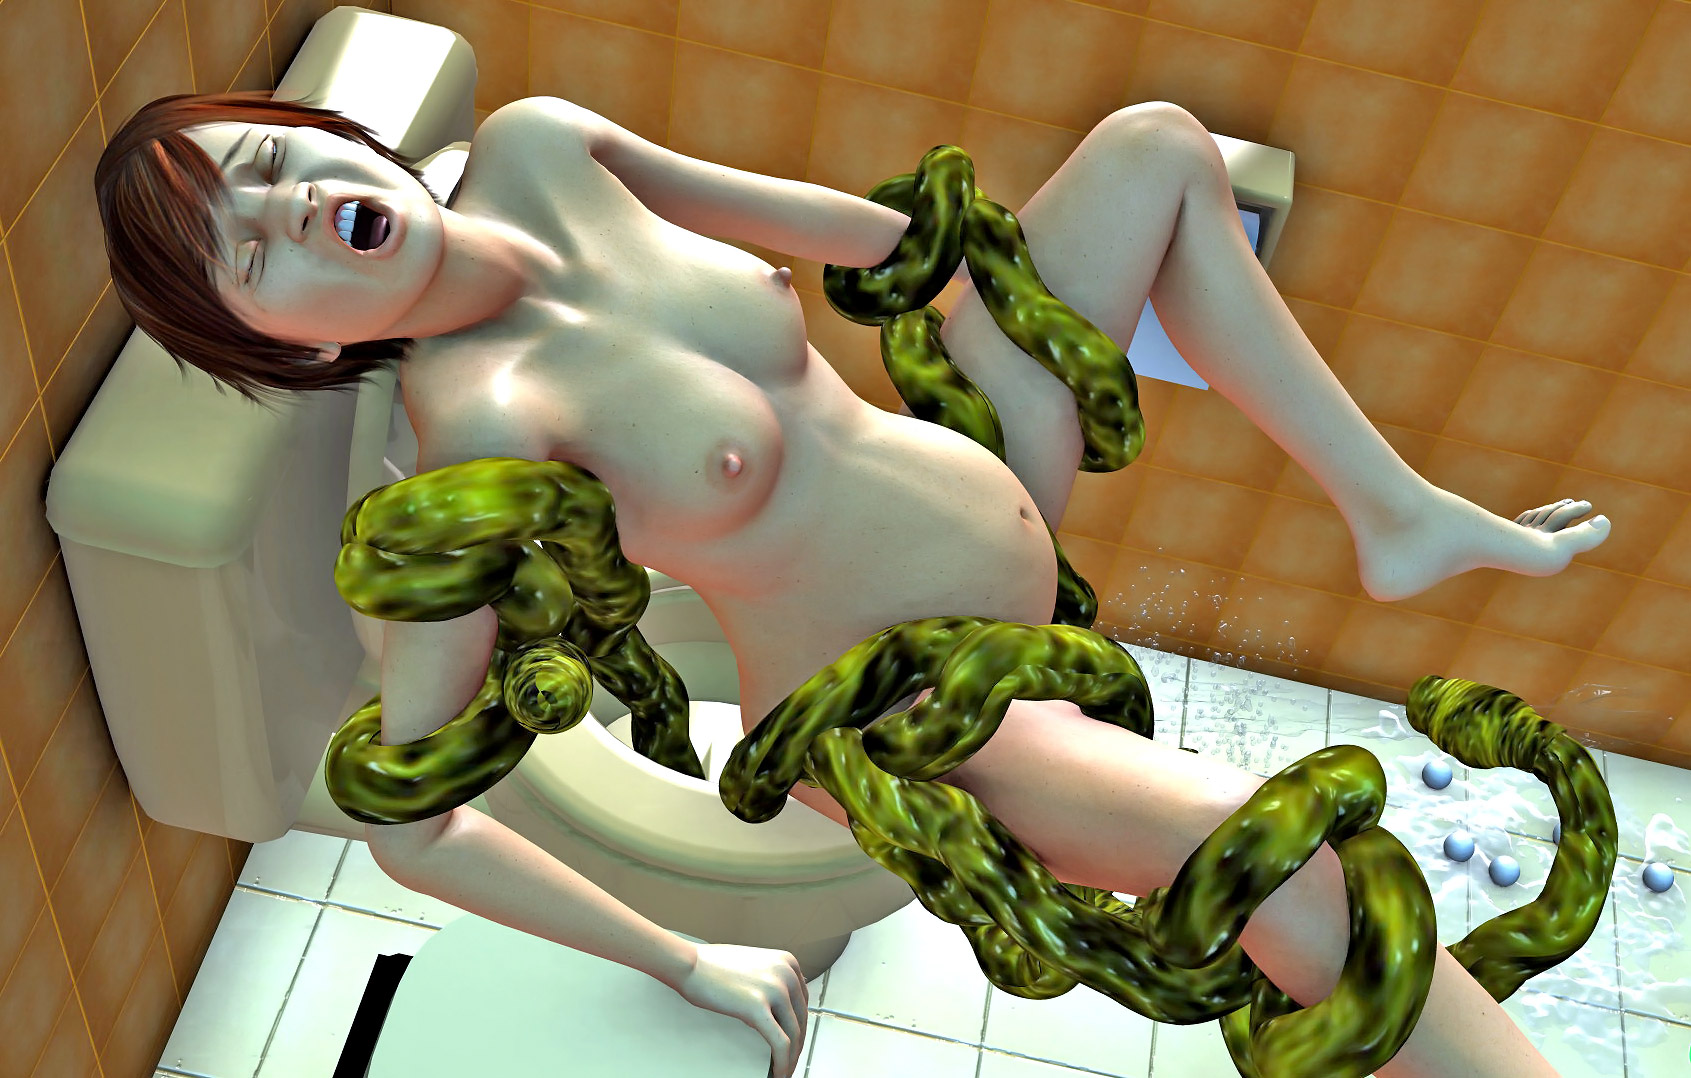 3d monster hot sex games videos youtube erotic scenes